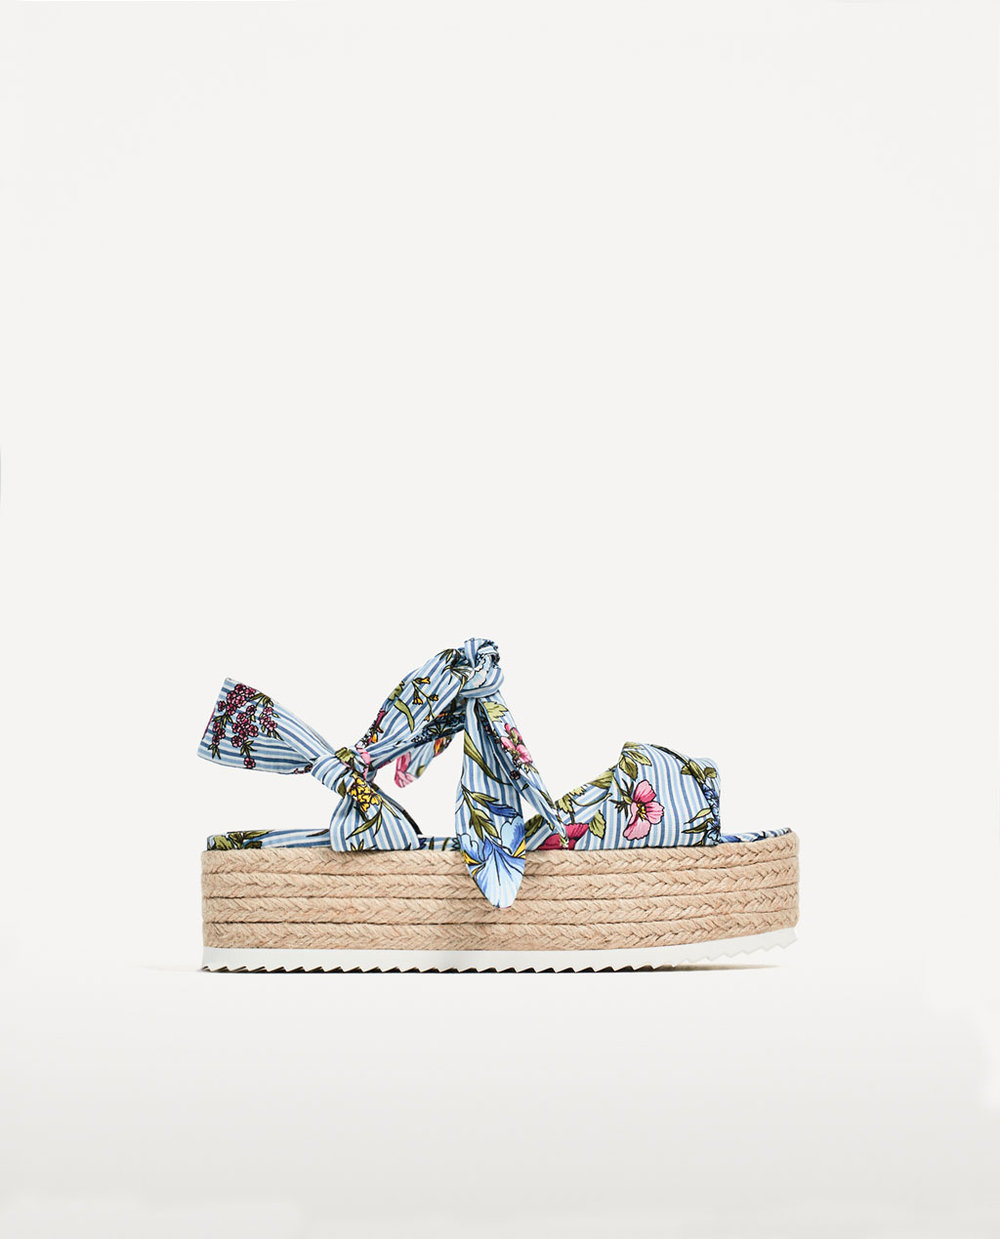 Floral Tied Raffia Wedge, Zara, £49.99